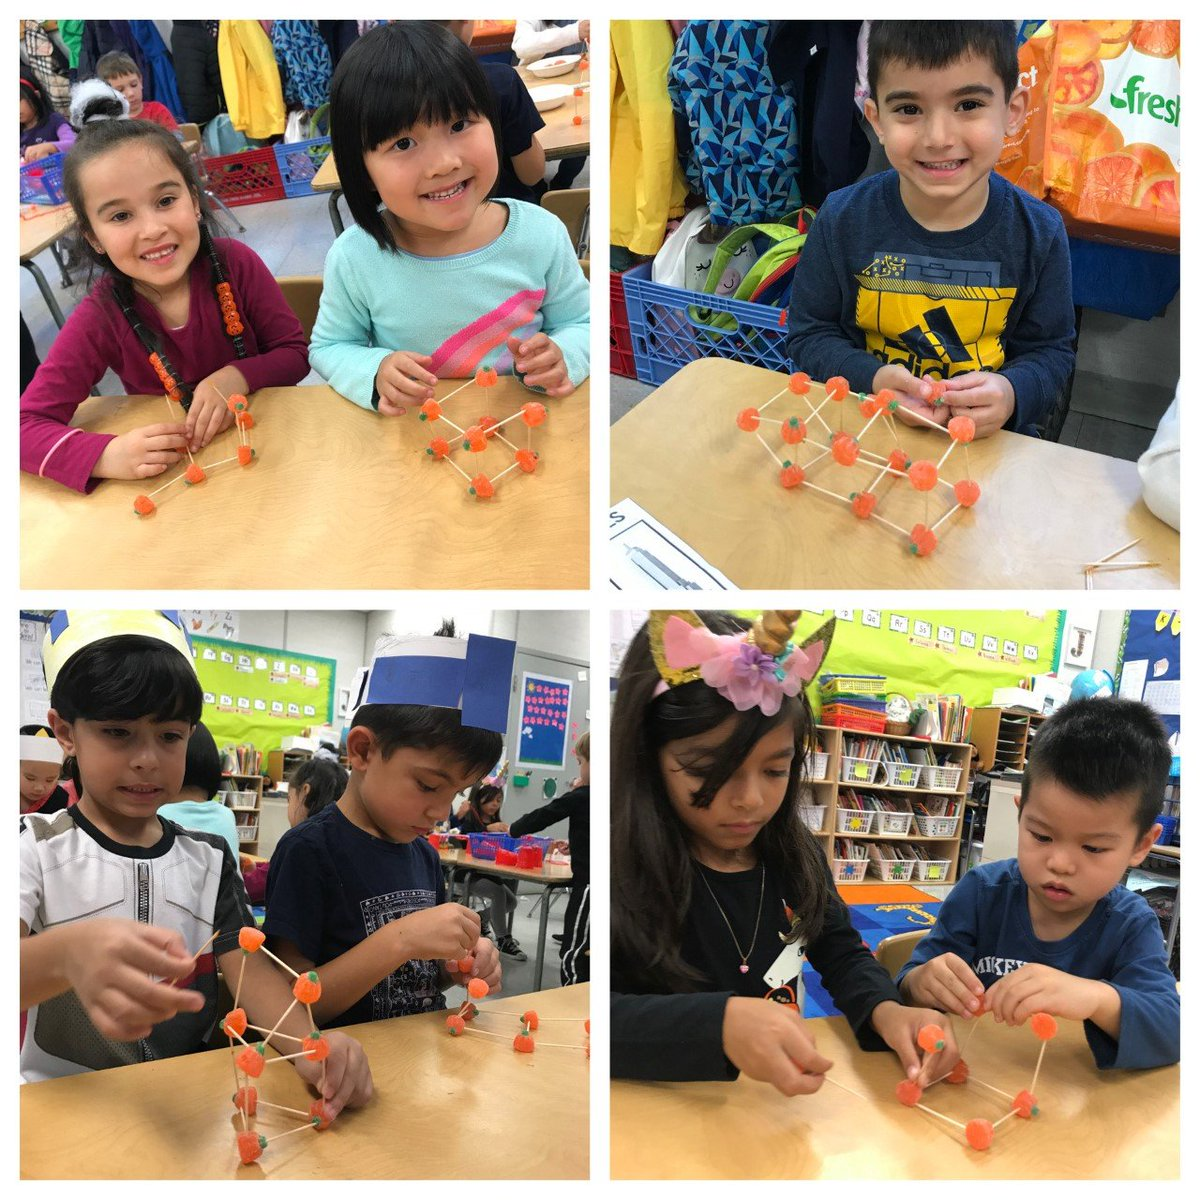 Ps41q On Twitter Kindergarten Studying How To Make Strong Structures Using A Triangle Shape To Support Stabilize And Stiffen Can You Build A Candy Pumpkin Tower And Spider Web Bridge Halloween Stem D26team